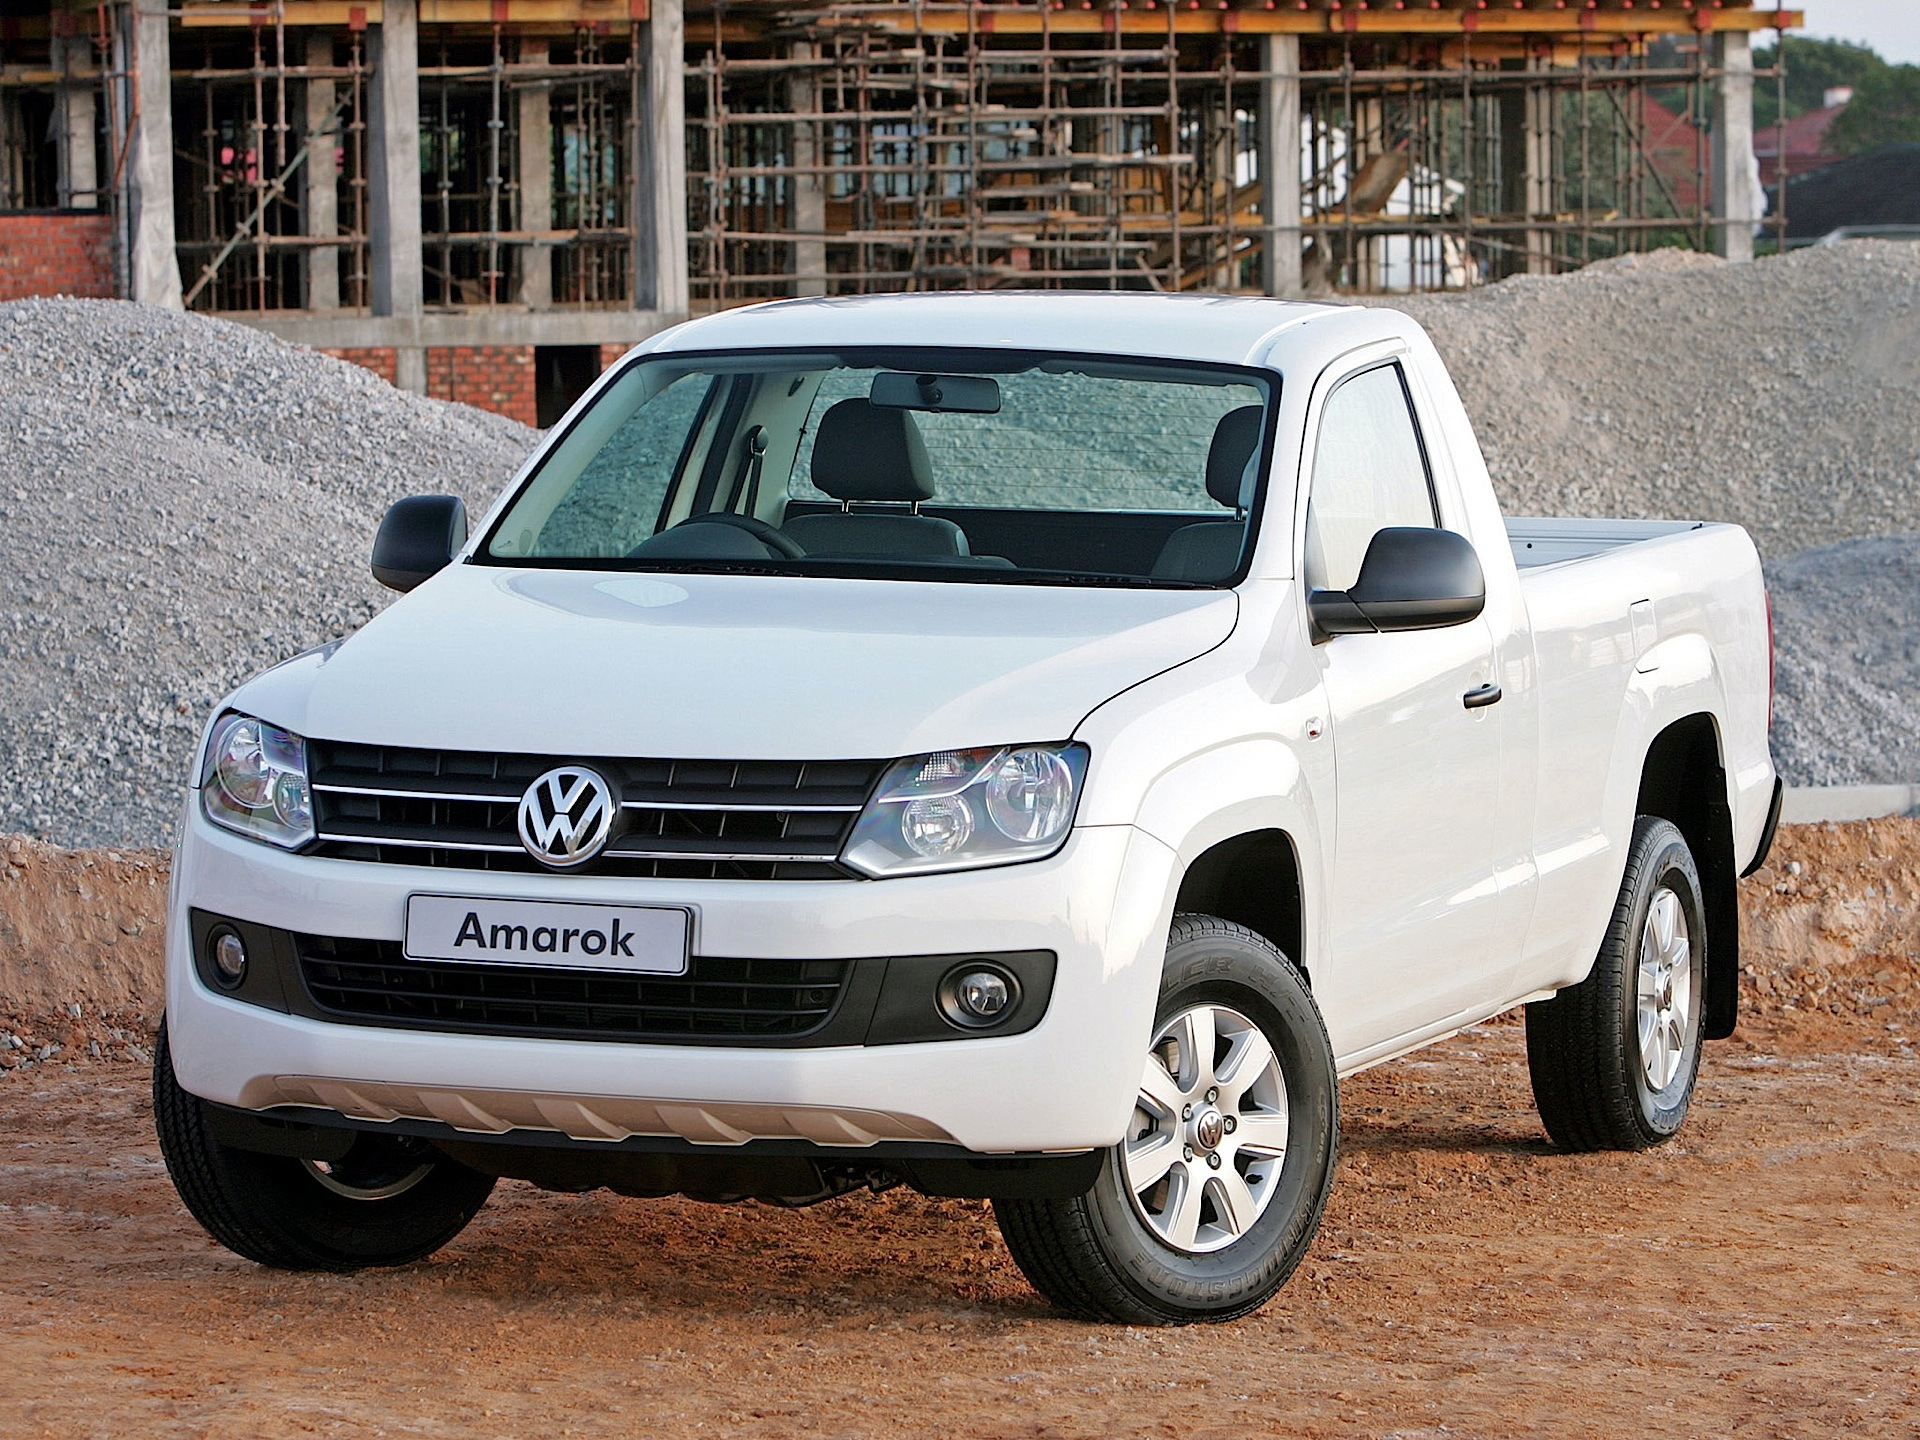 Vw Amarok Single Cab : volkswagen amarok single cab specs photos 2011 2012 ~ Jslefanu.com Haus und Dekorationen